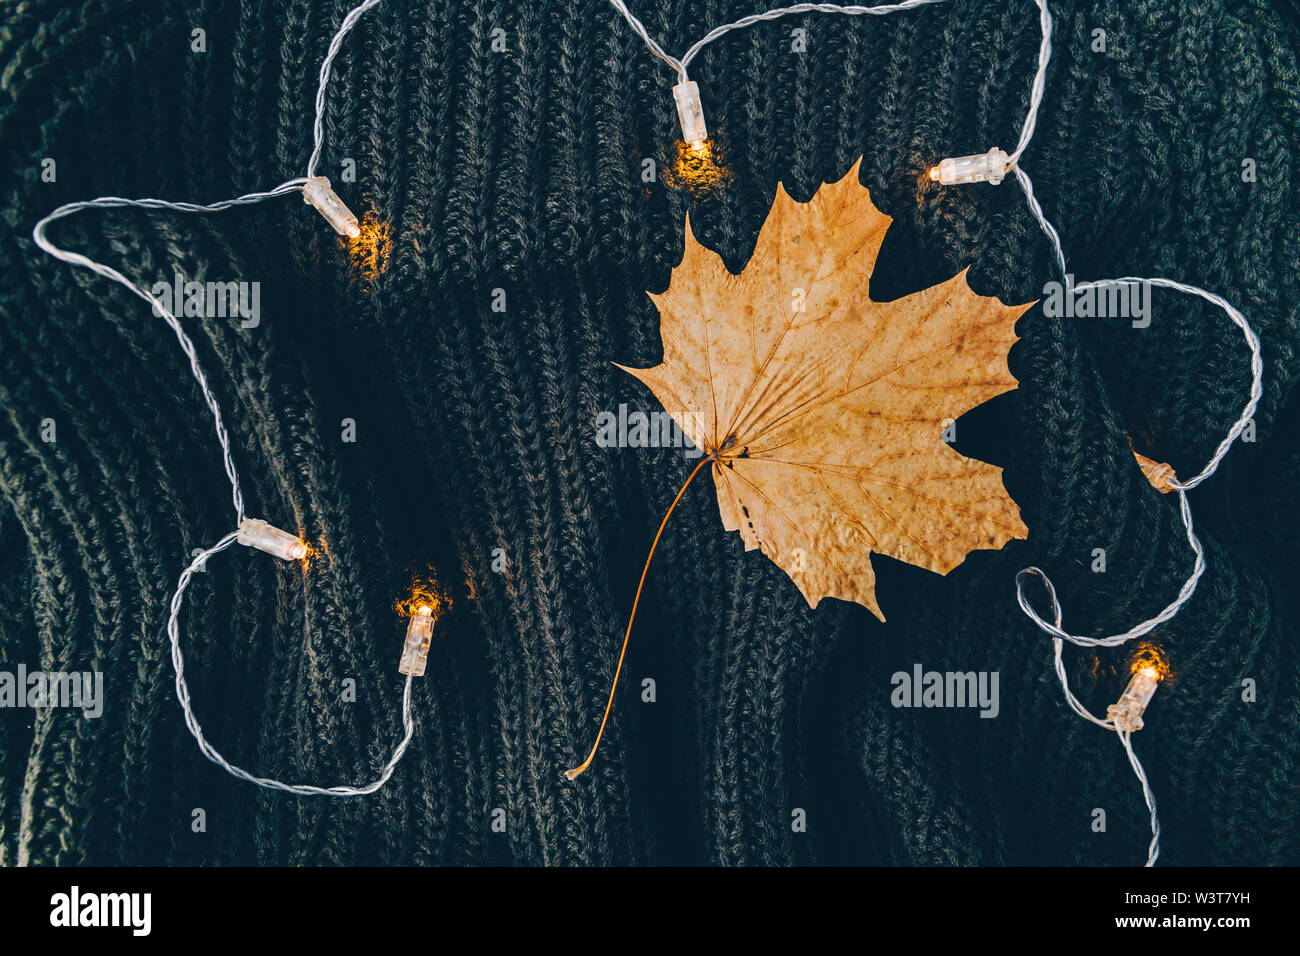 Dried maple leaf on a warm sweater surrounded festoon lights. Cozy fall or winter flat lay, top view. - Stock Image